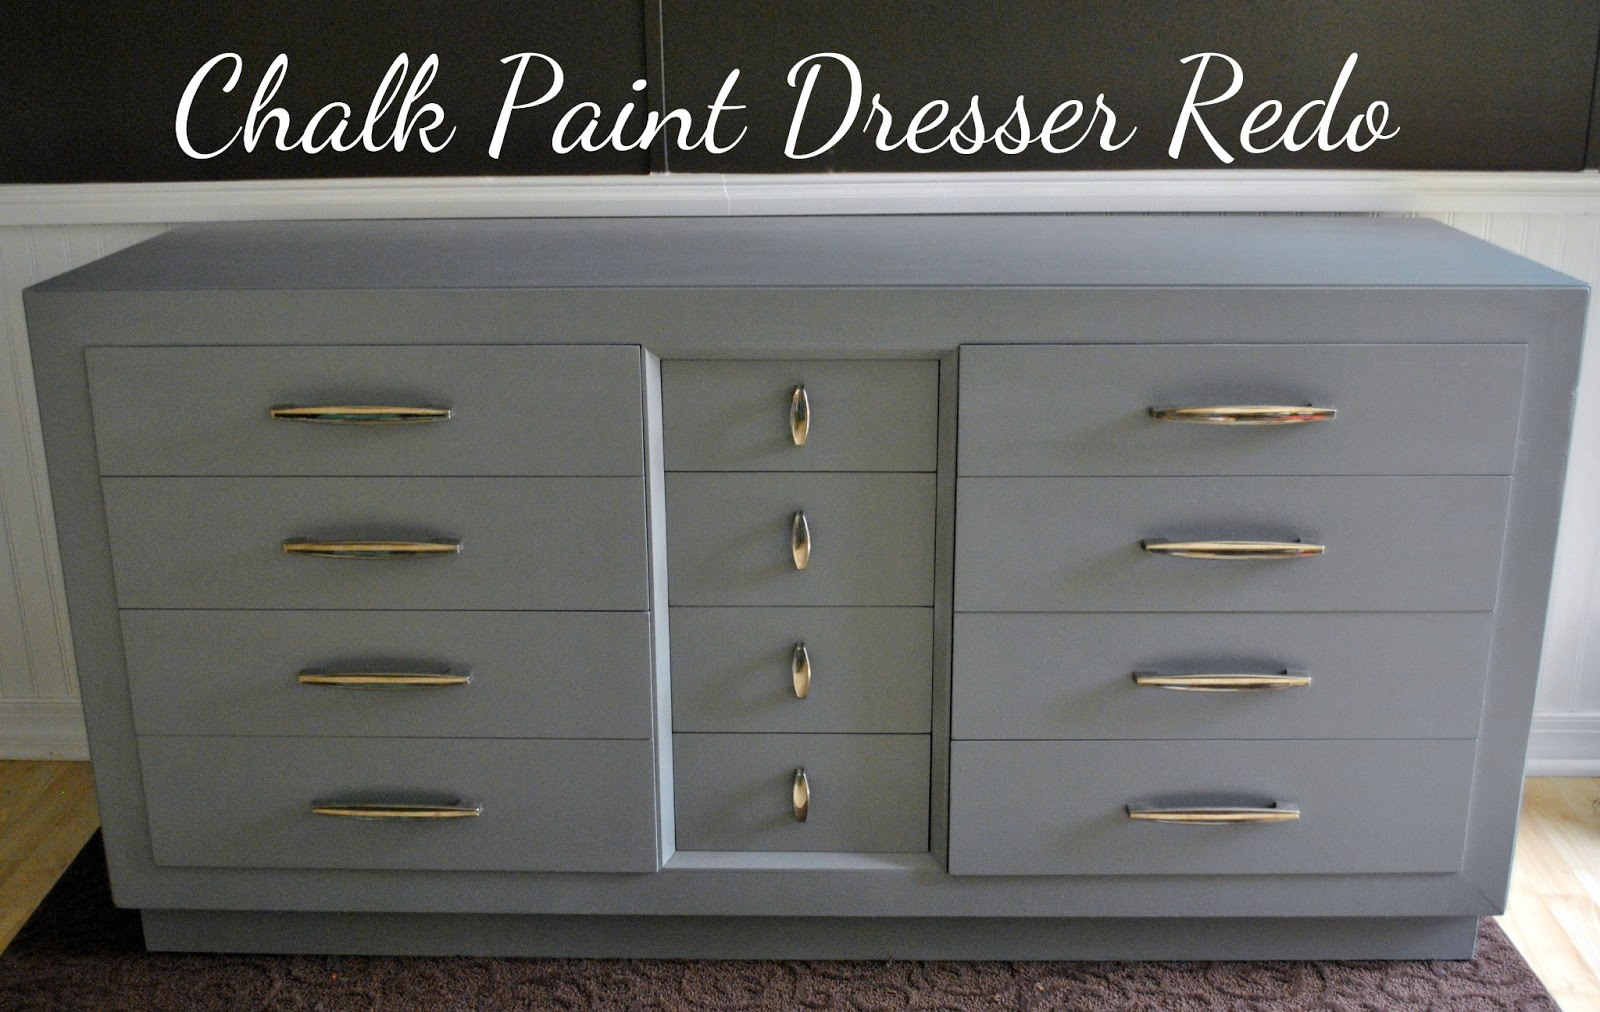 Life With 4 Boys DIY Chalk Paint Dresser Redo